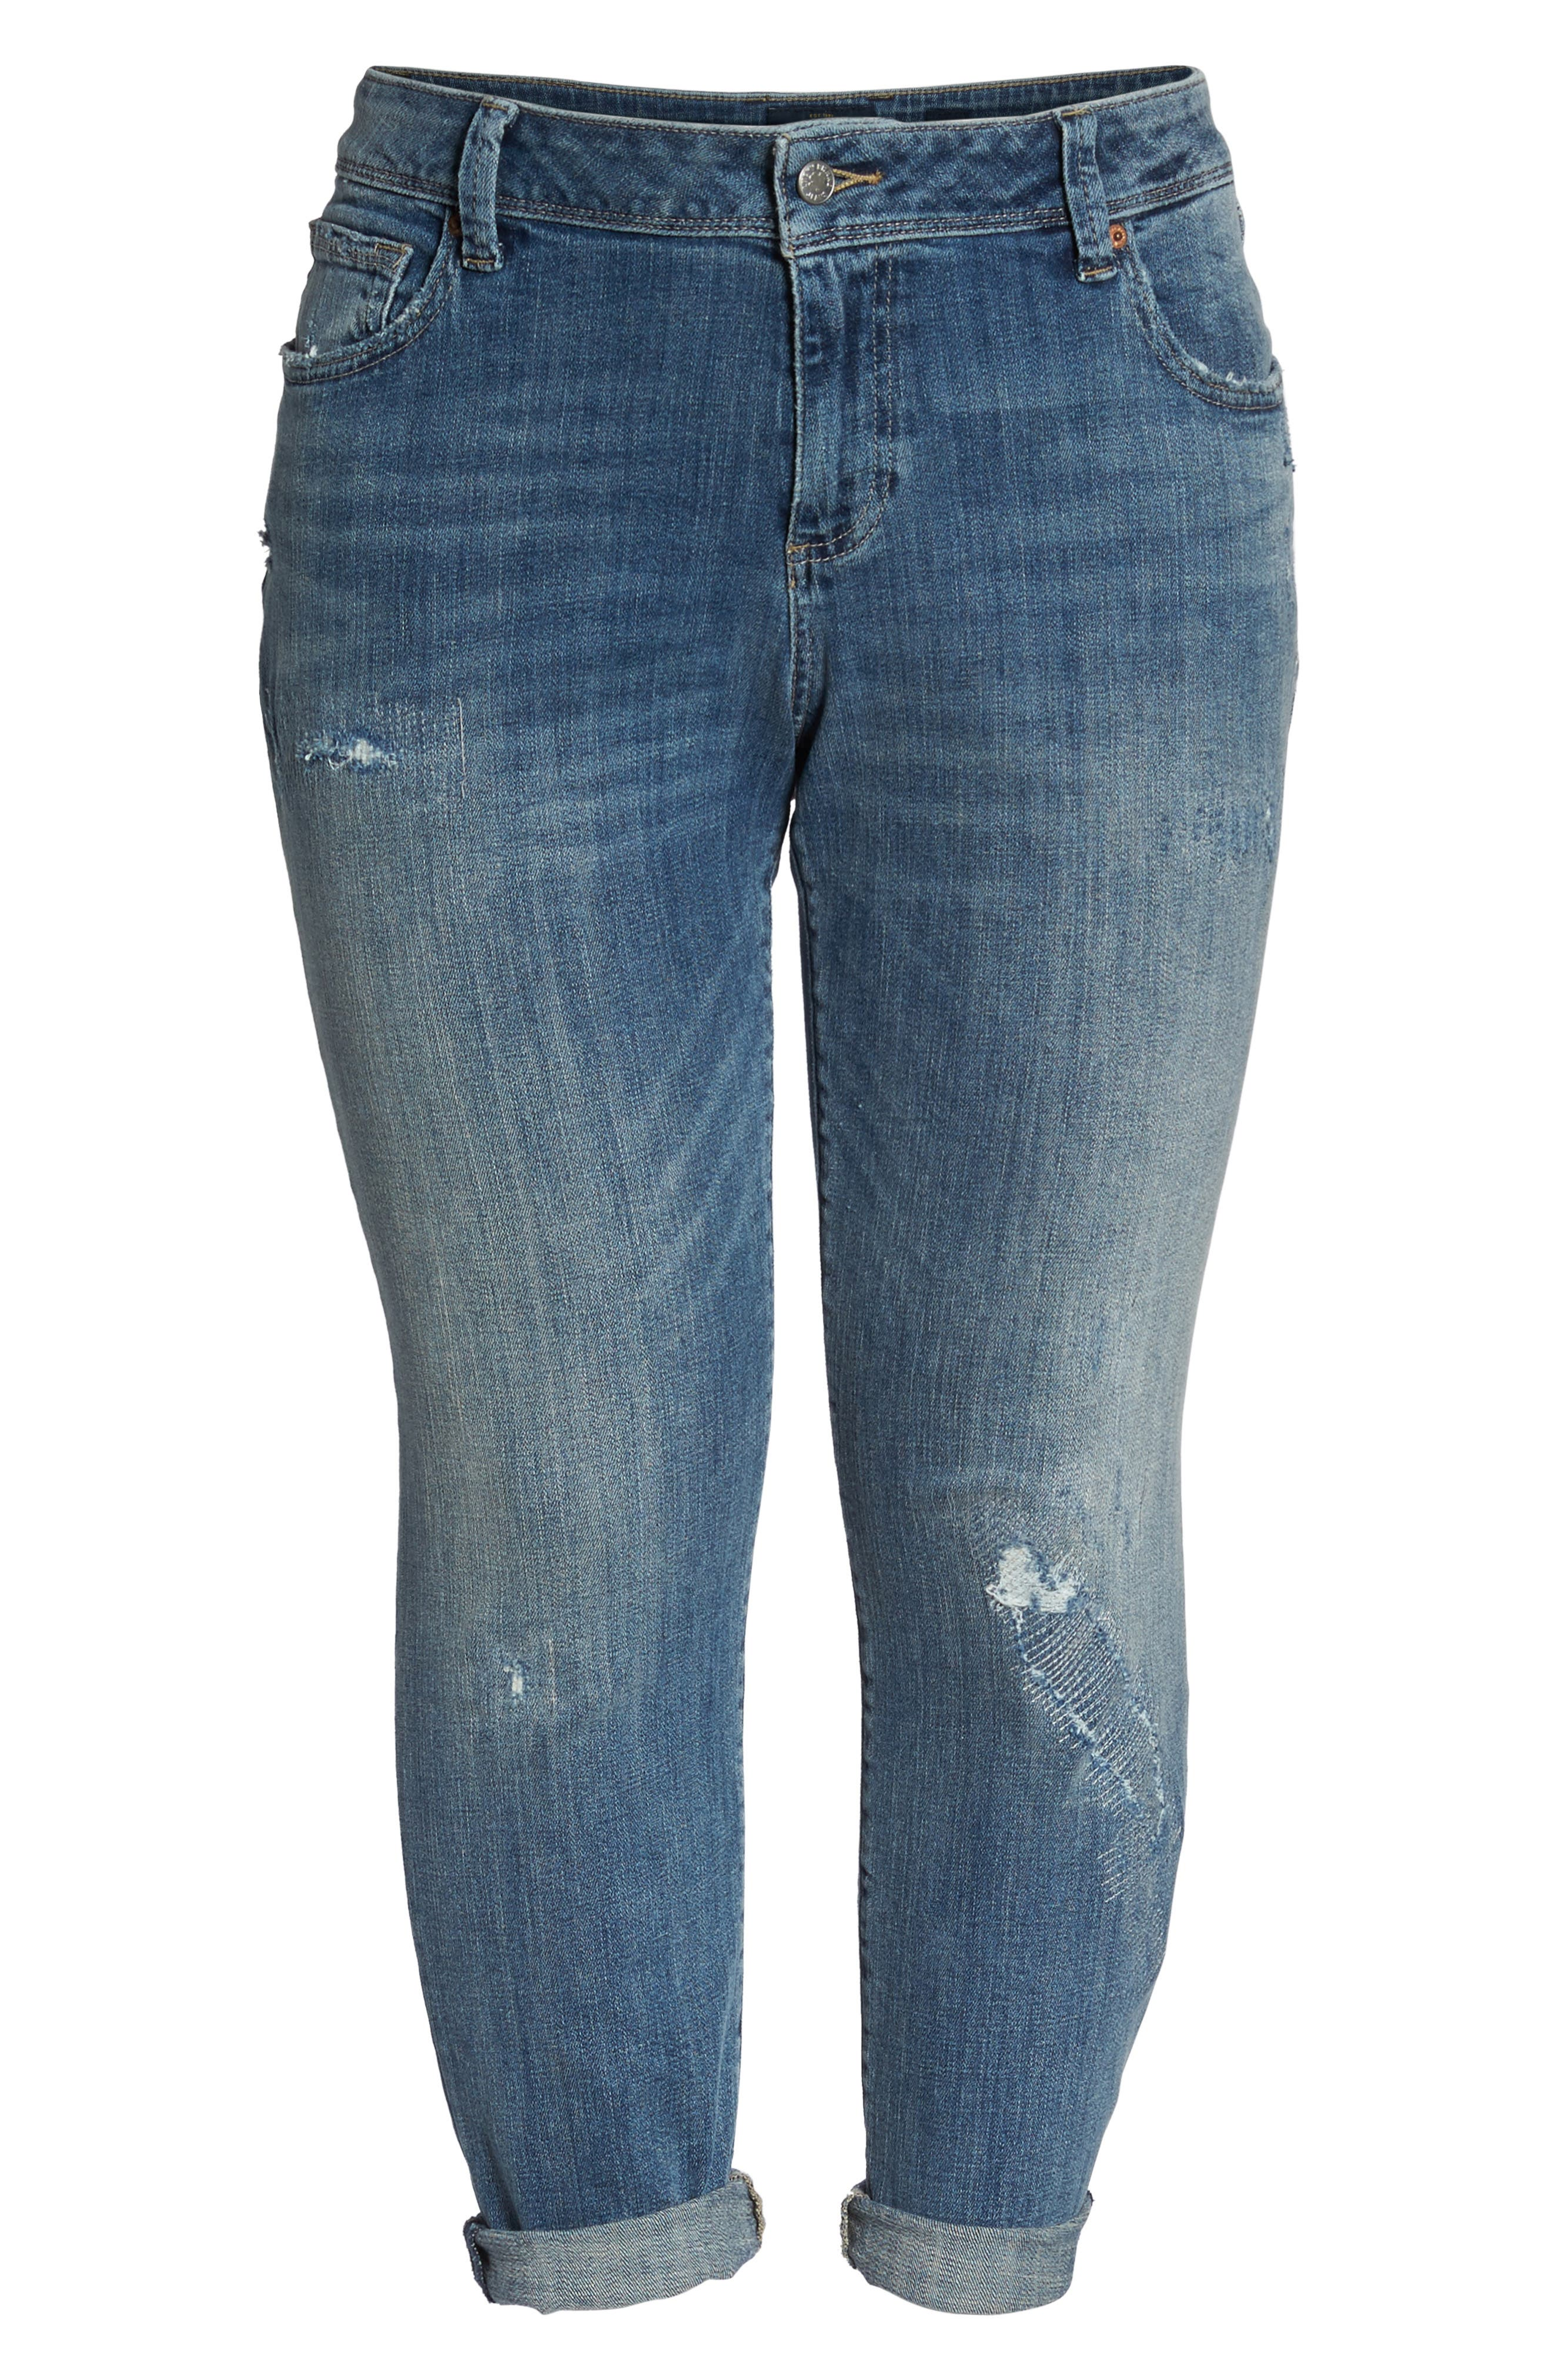 Reese Distressed Stretch Boyfriend Jeans,                             Alternate thumbnail 6, color,                             420